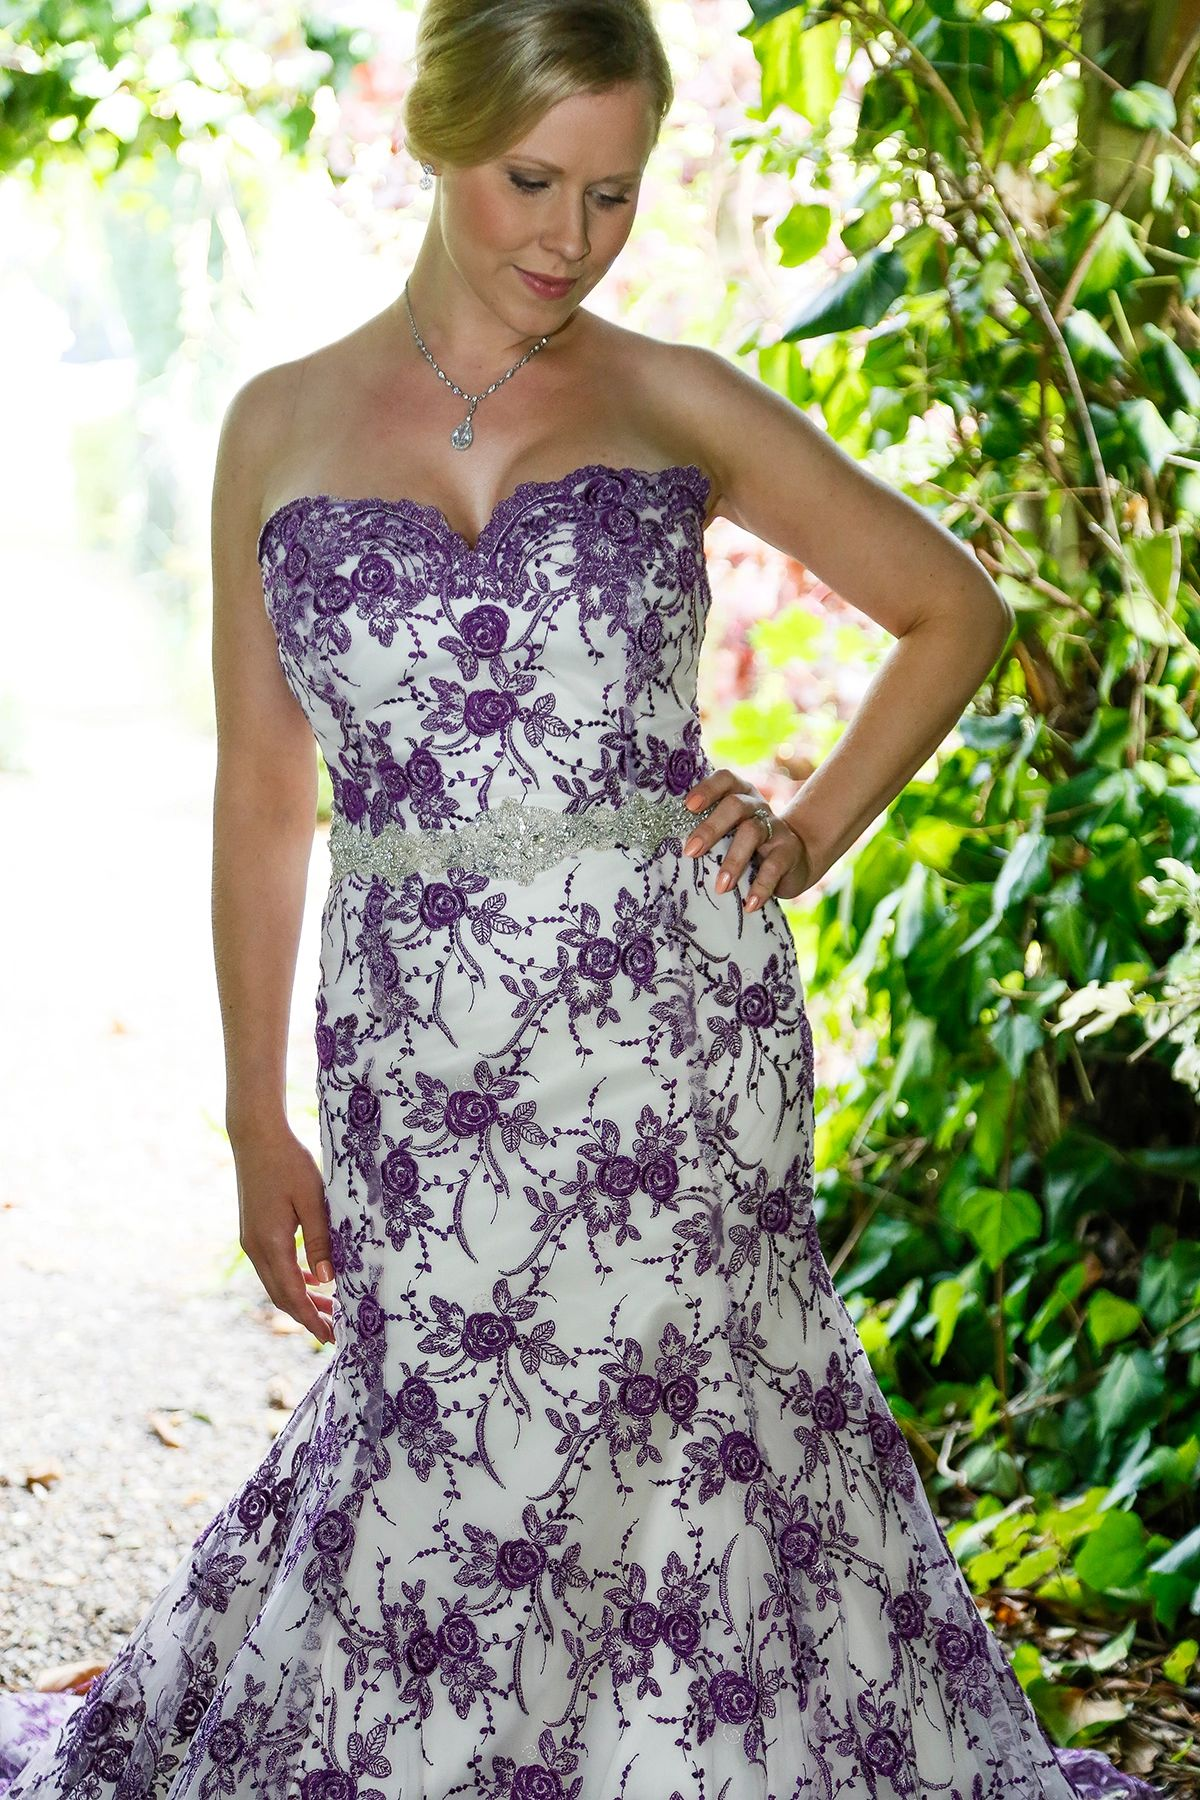 Ivory satin, purple lace wedding dress,  crystal waist band.  Susie Grist Couture SLR Photography